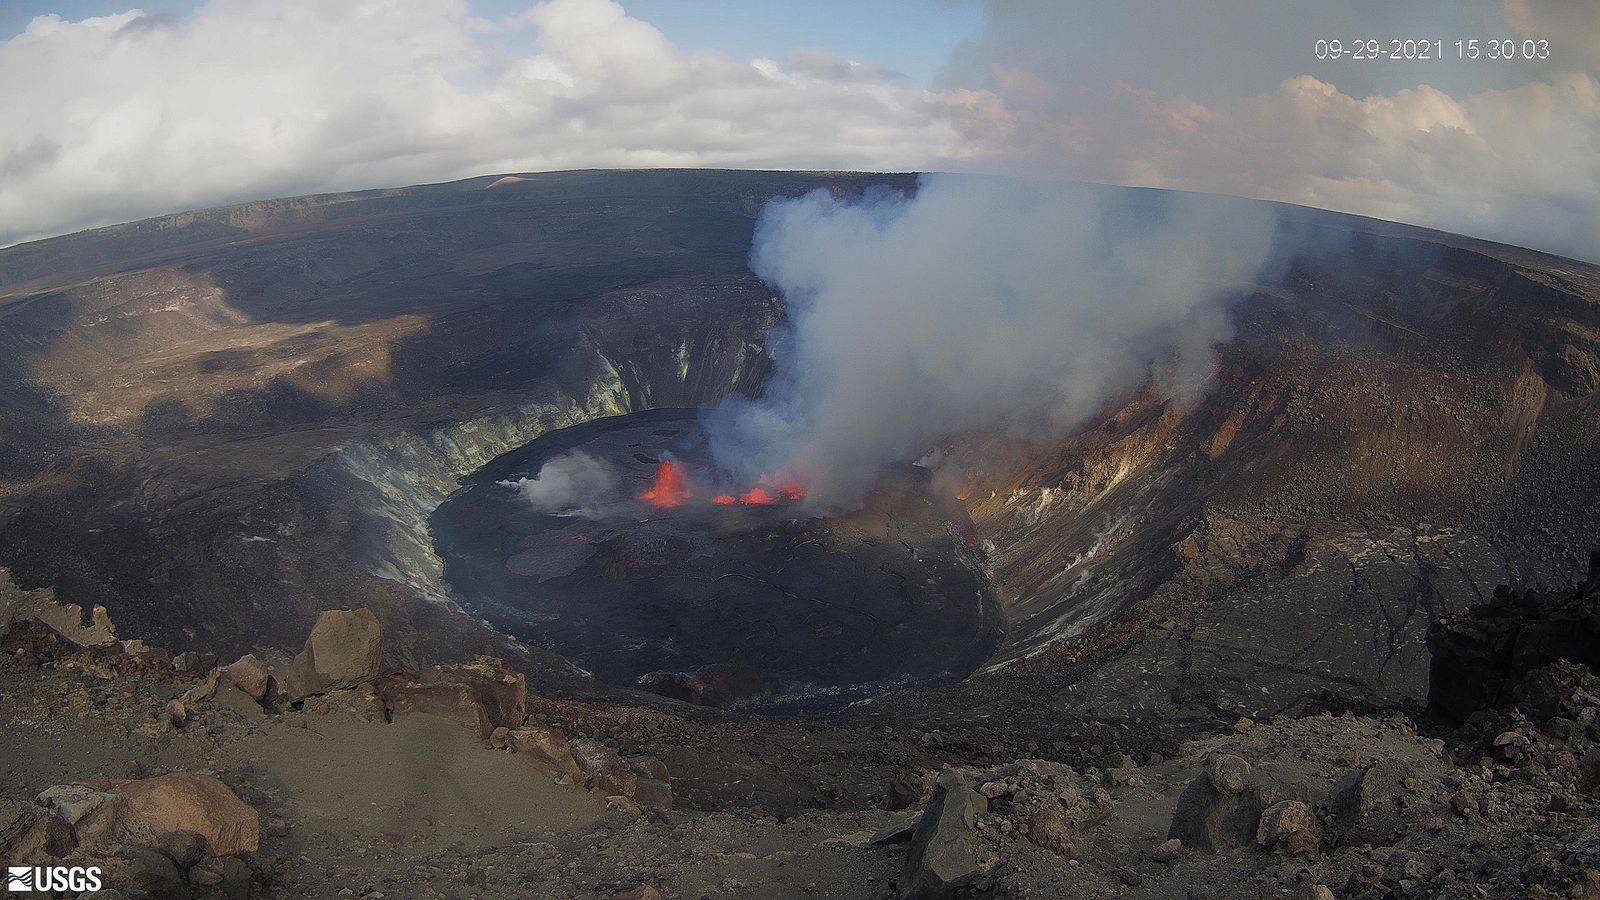 Kilauea / Halema'uma'u - 09.29.2021 / 3:30 p.m. HST - eruption in progress at the center of the crater - USGS-HVO - one click to enlarge